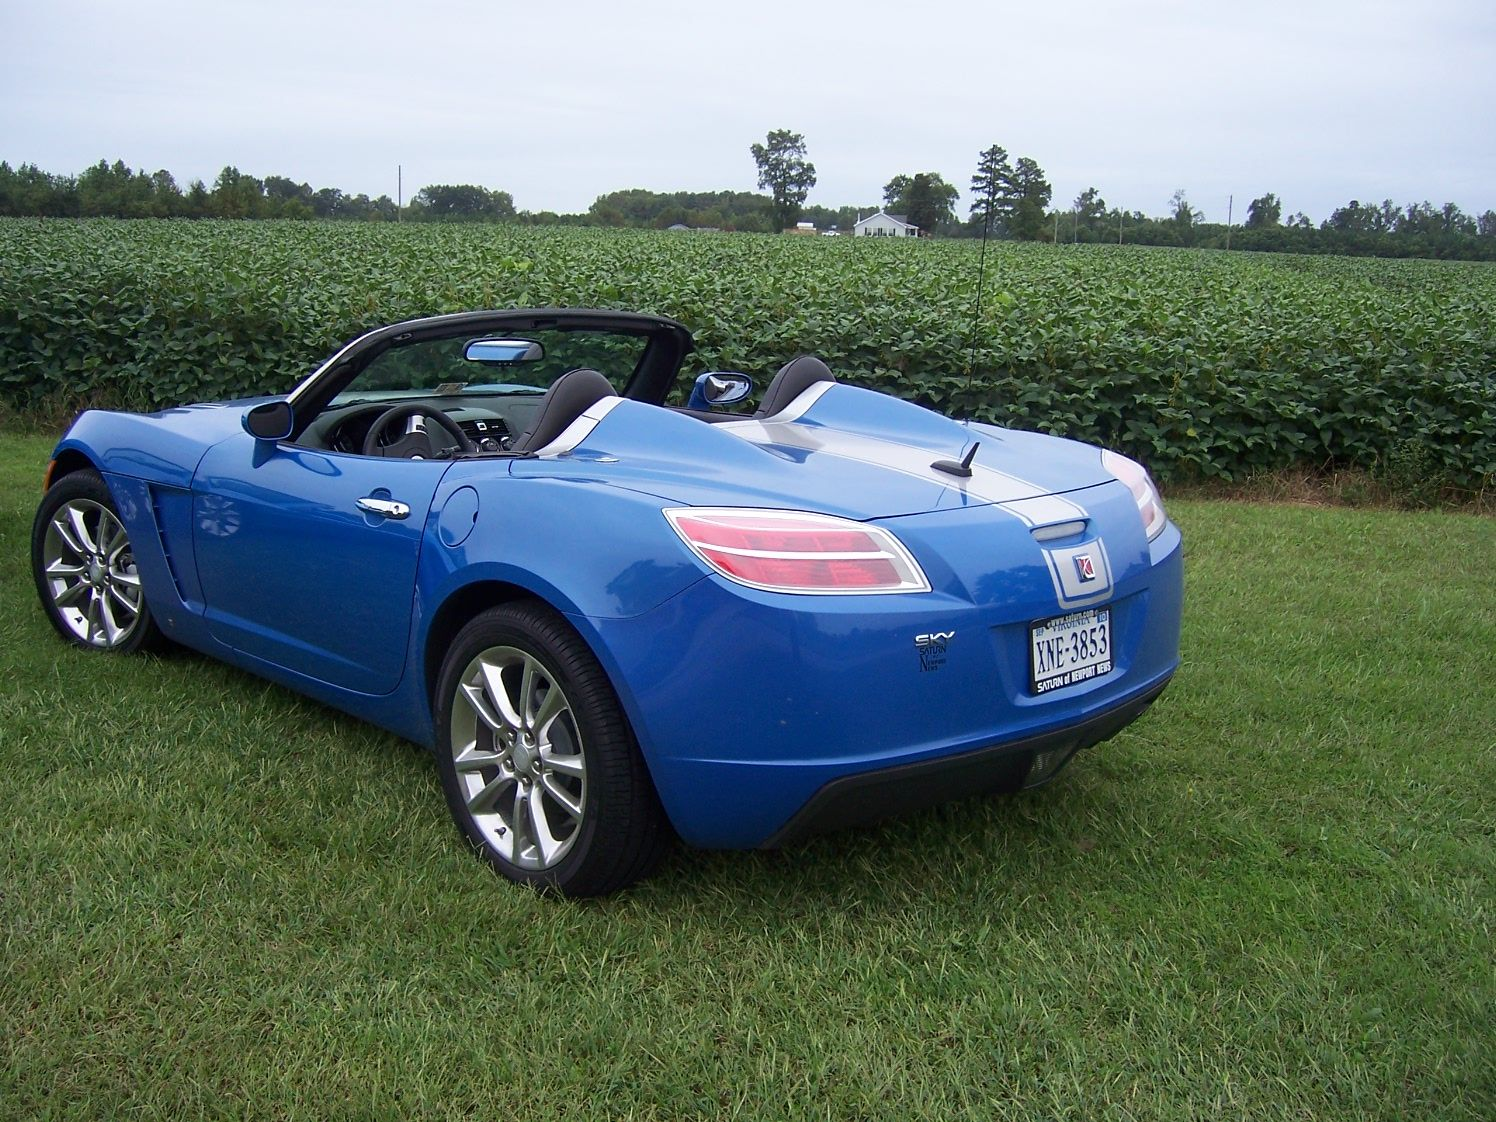 2009 Saturn Sky for Sale | ... 2009 limited edition saturn sky for sale - Saturn Sky Forums: Saturn